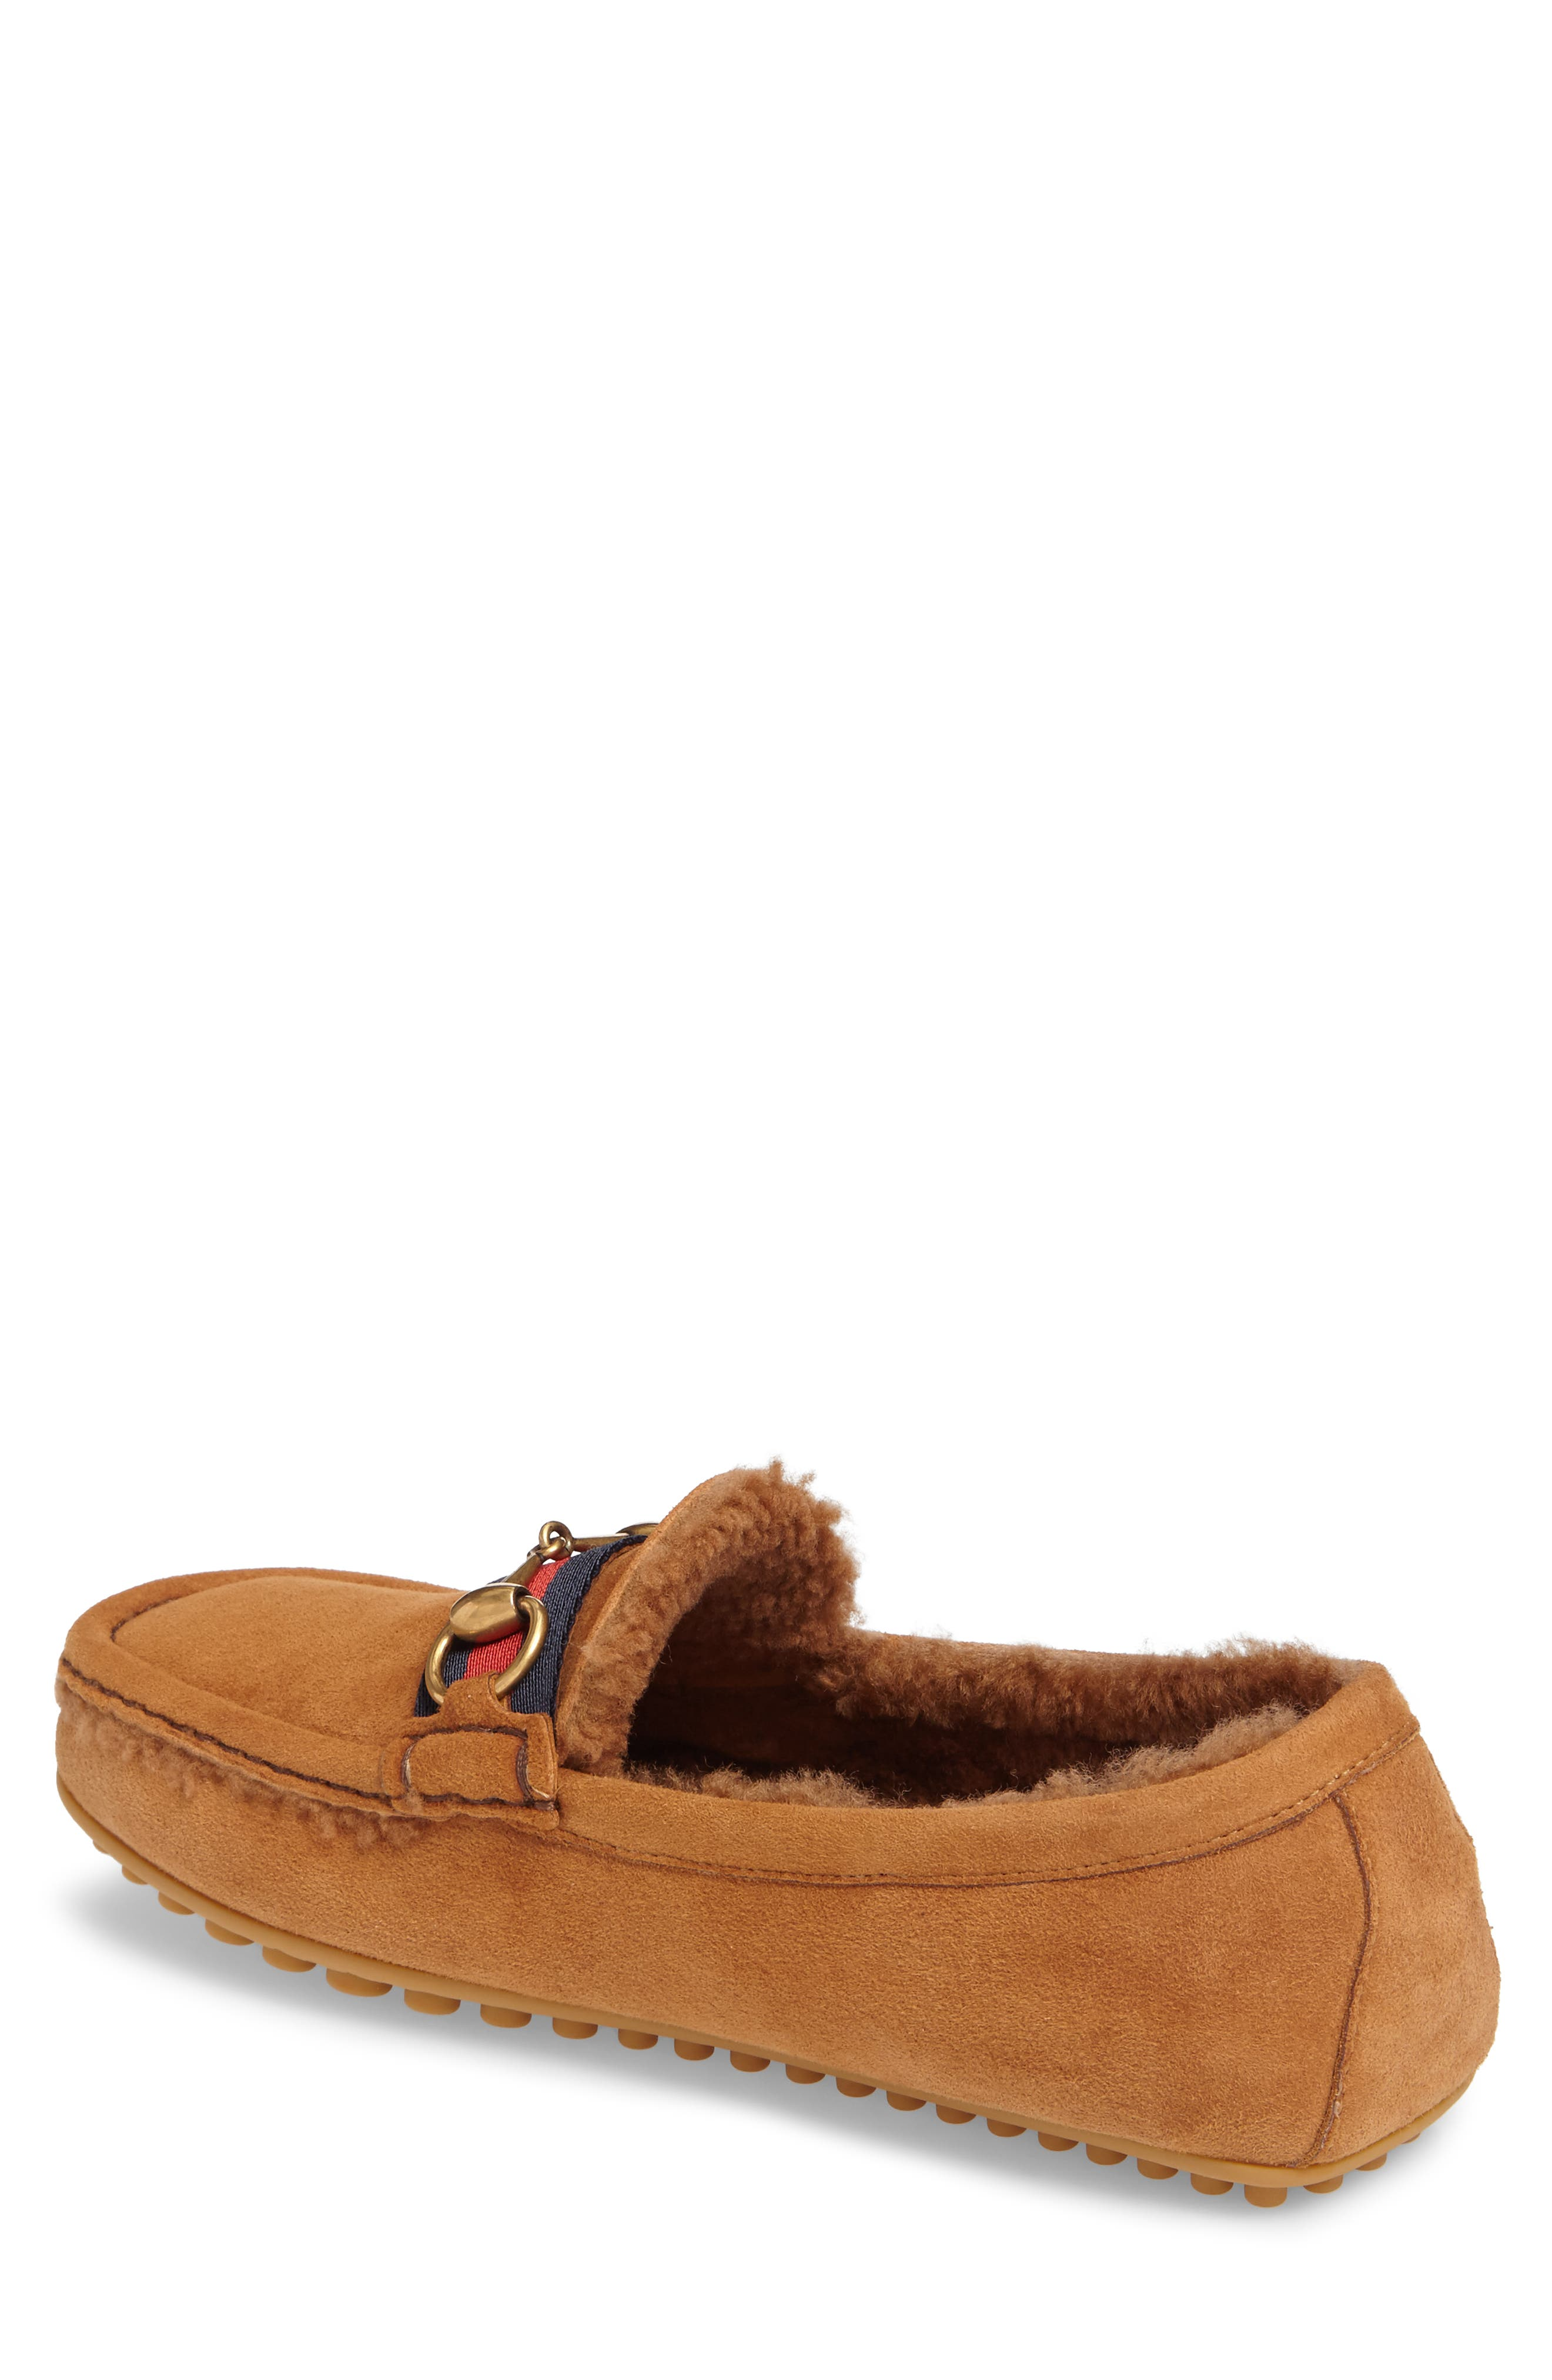 Driving Shoe with Genuine Shearling,                             Alternate thumbnail 2, color,